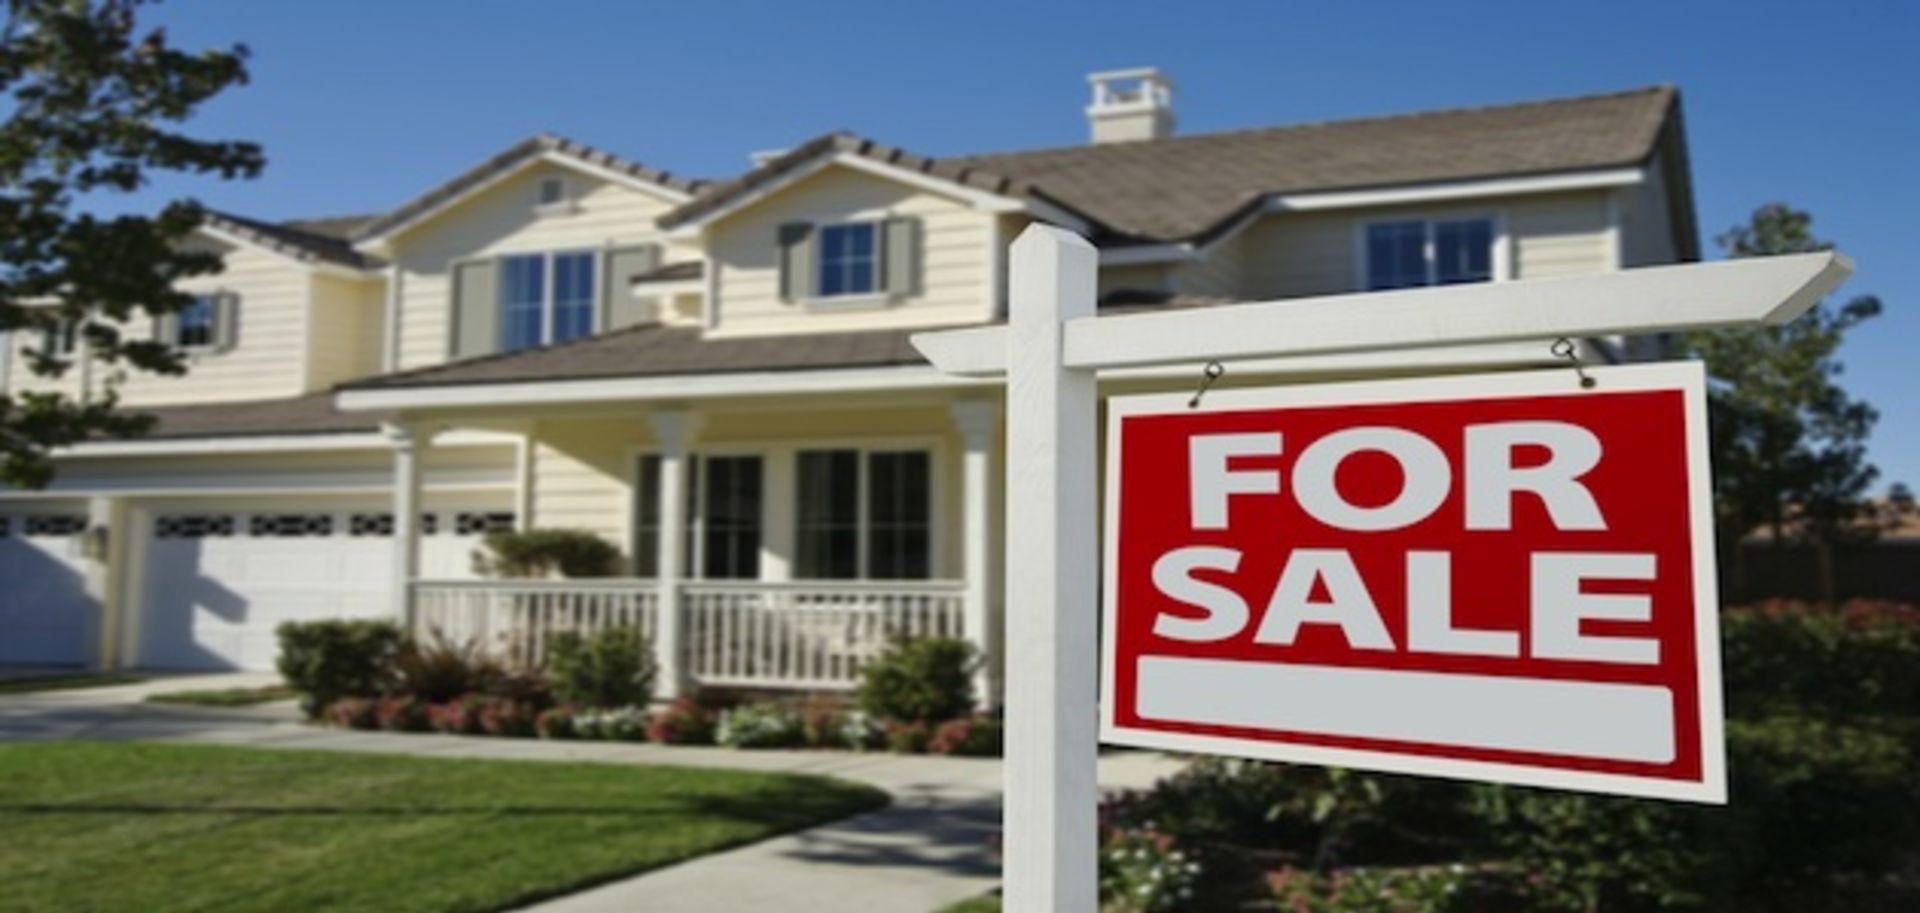 Selling Your Home? This Survey Tells You Everything To Expect